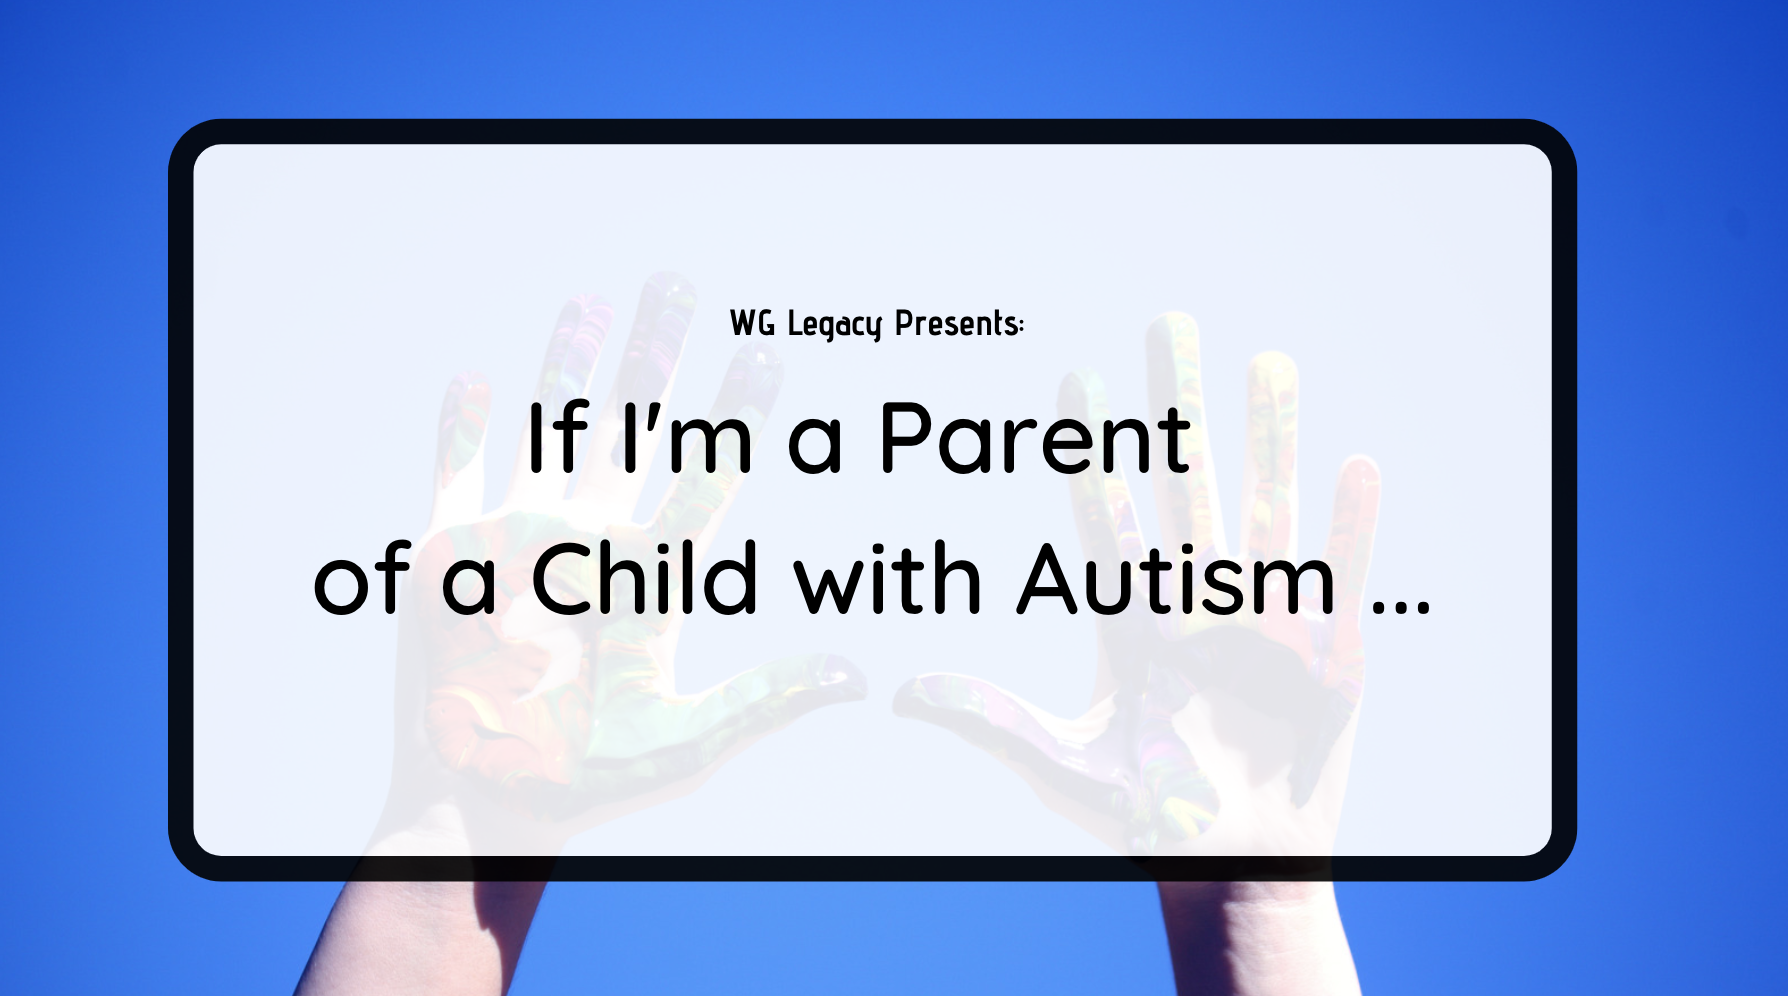 If I'm a Parent of a Child with Autism